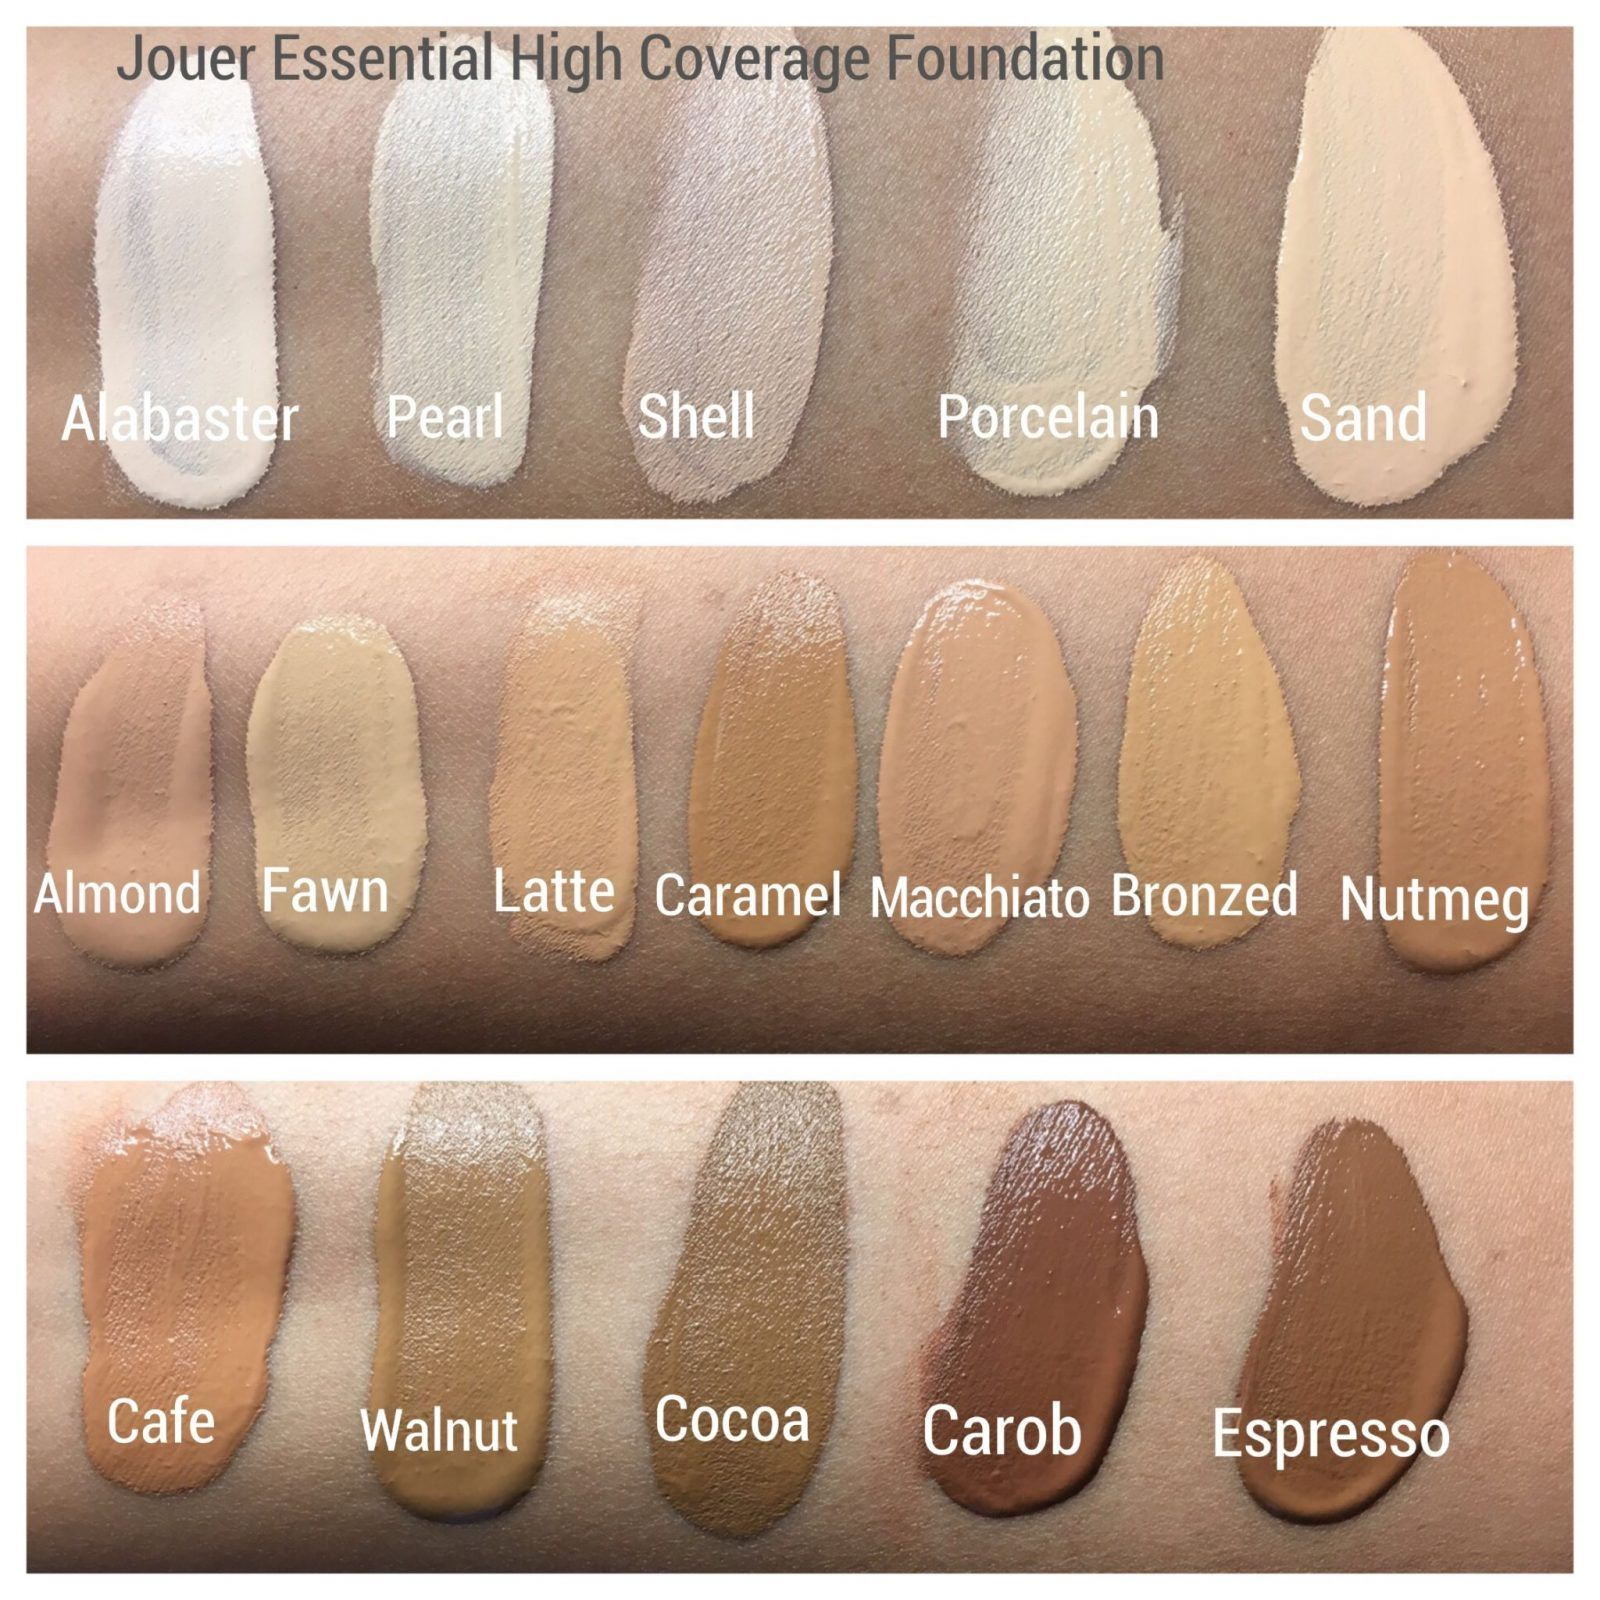 Jouer Essential High Coverage Creme Foundation Review Swatches